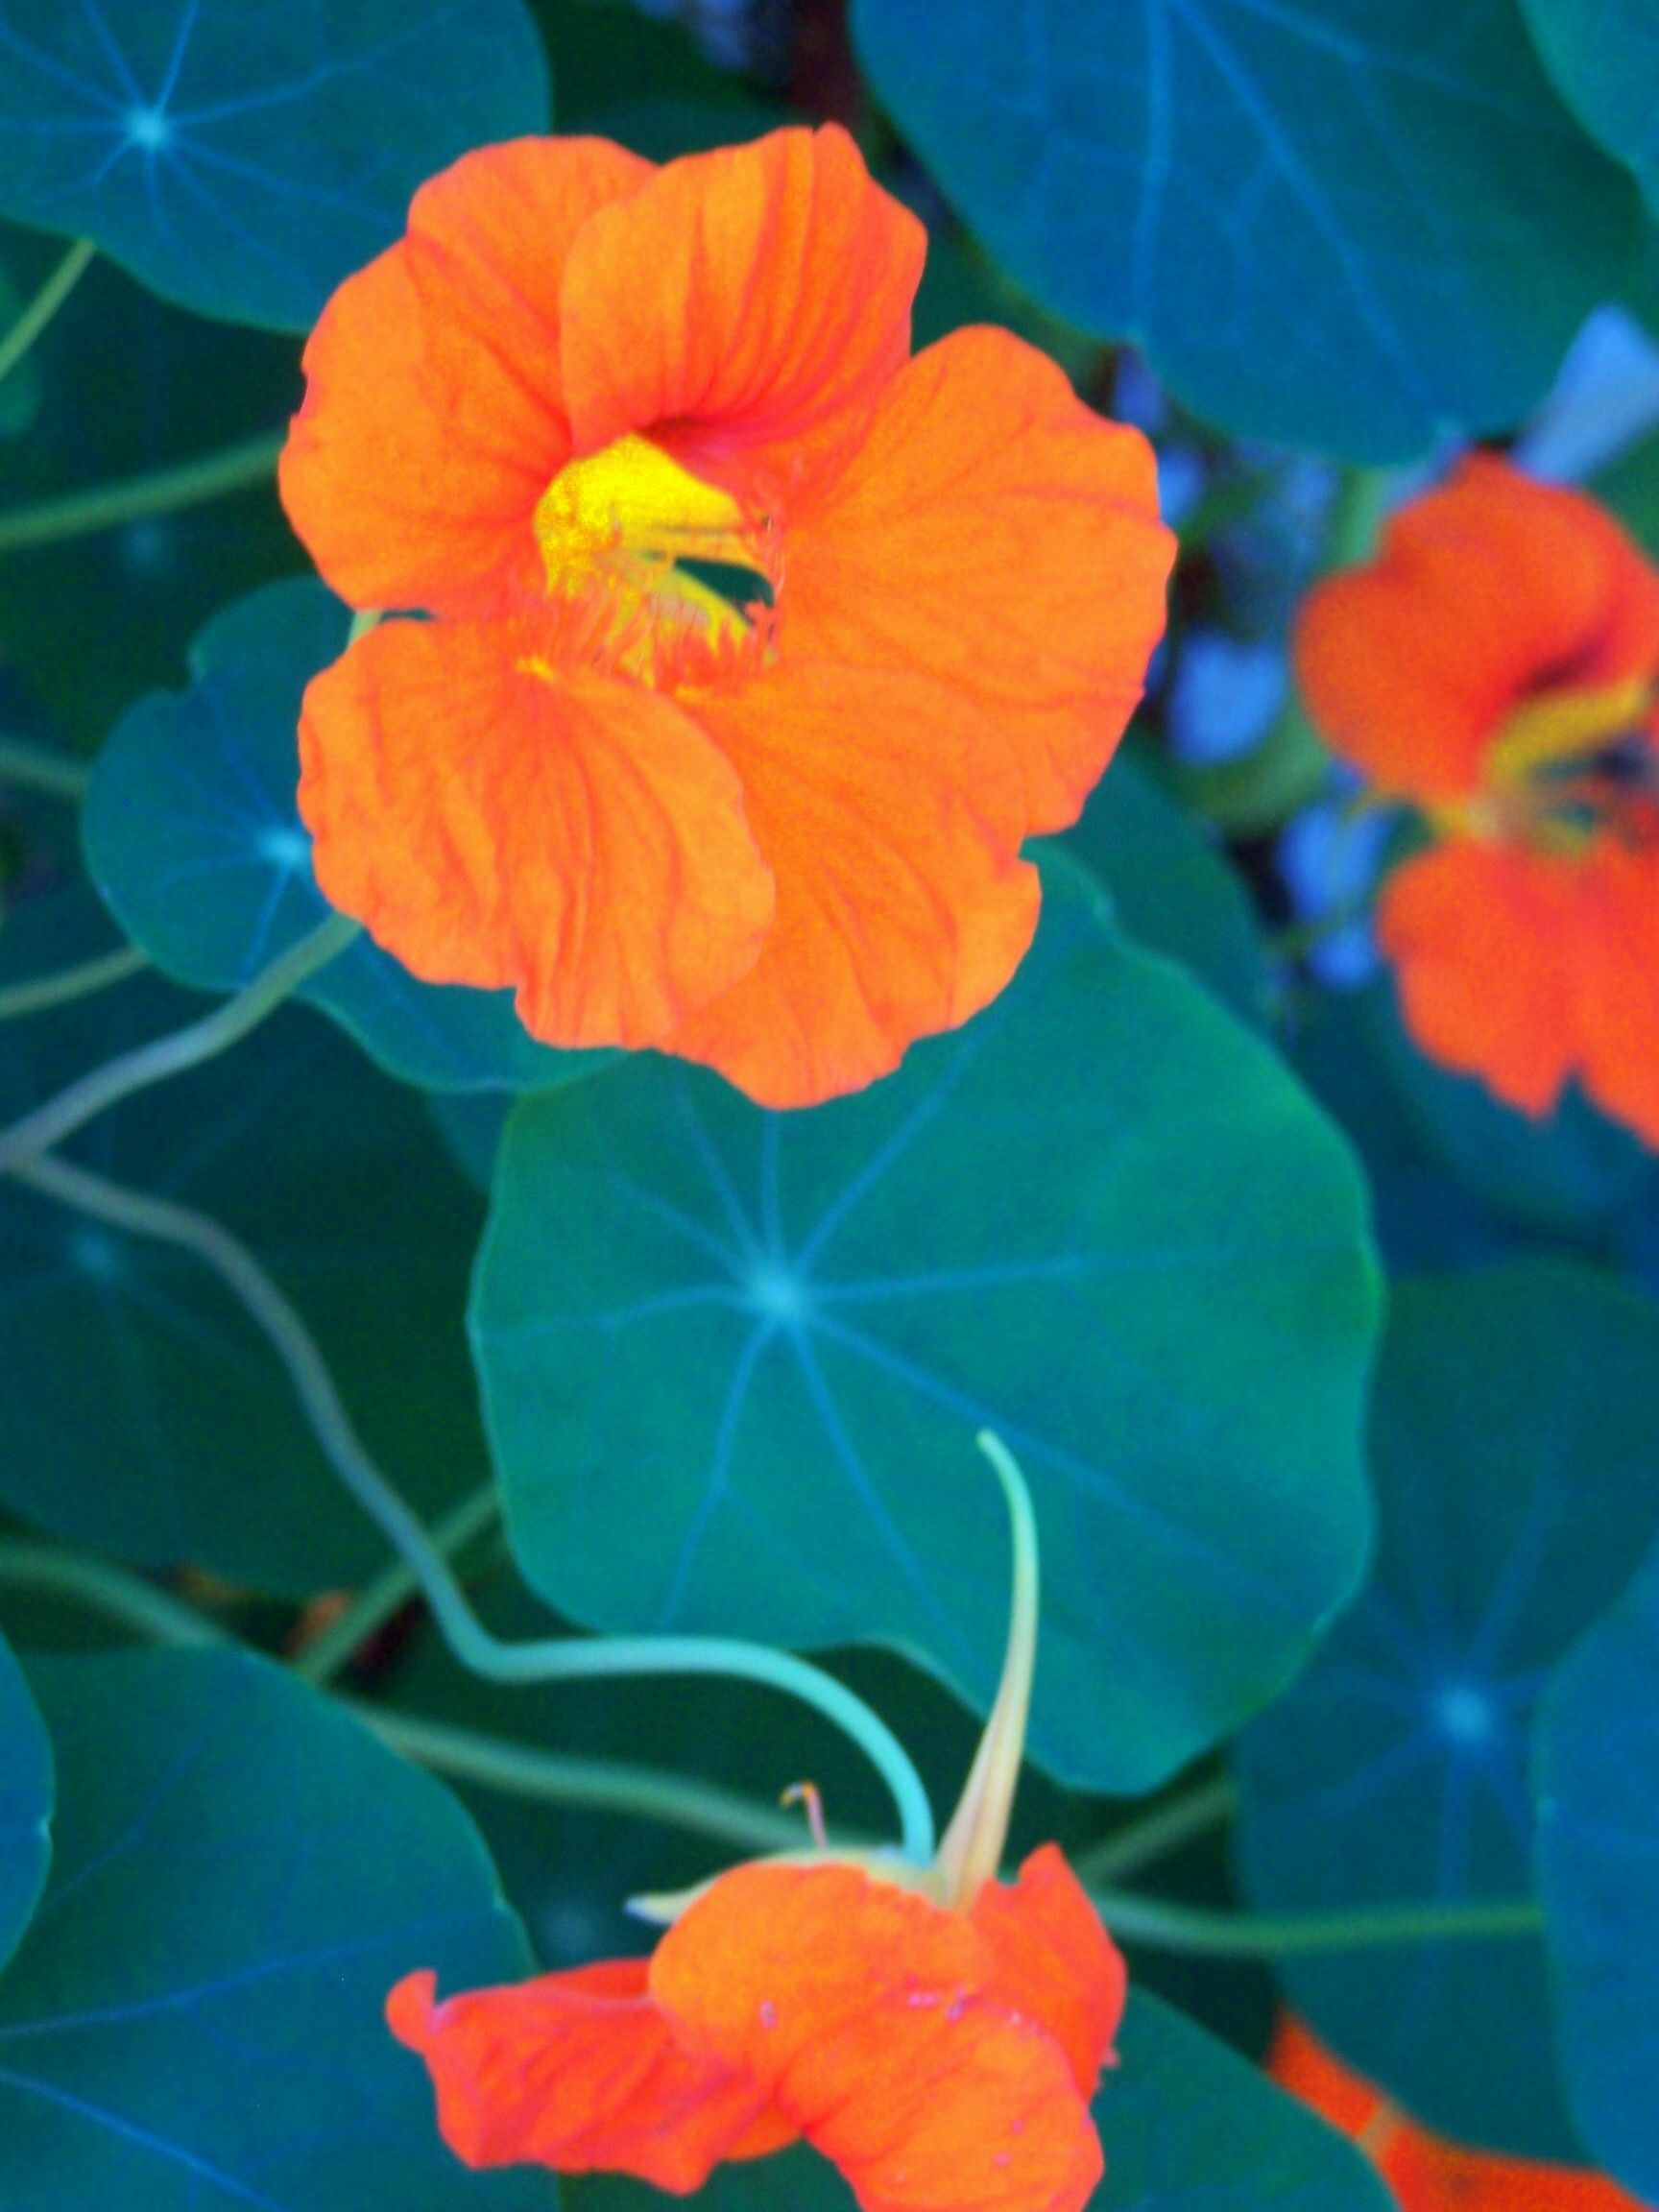 nasturtiums - plant with cucumbers, squash, broccoli to repel bugs ...